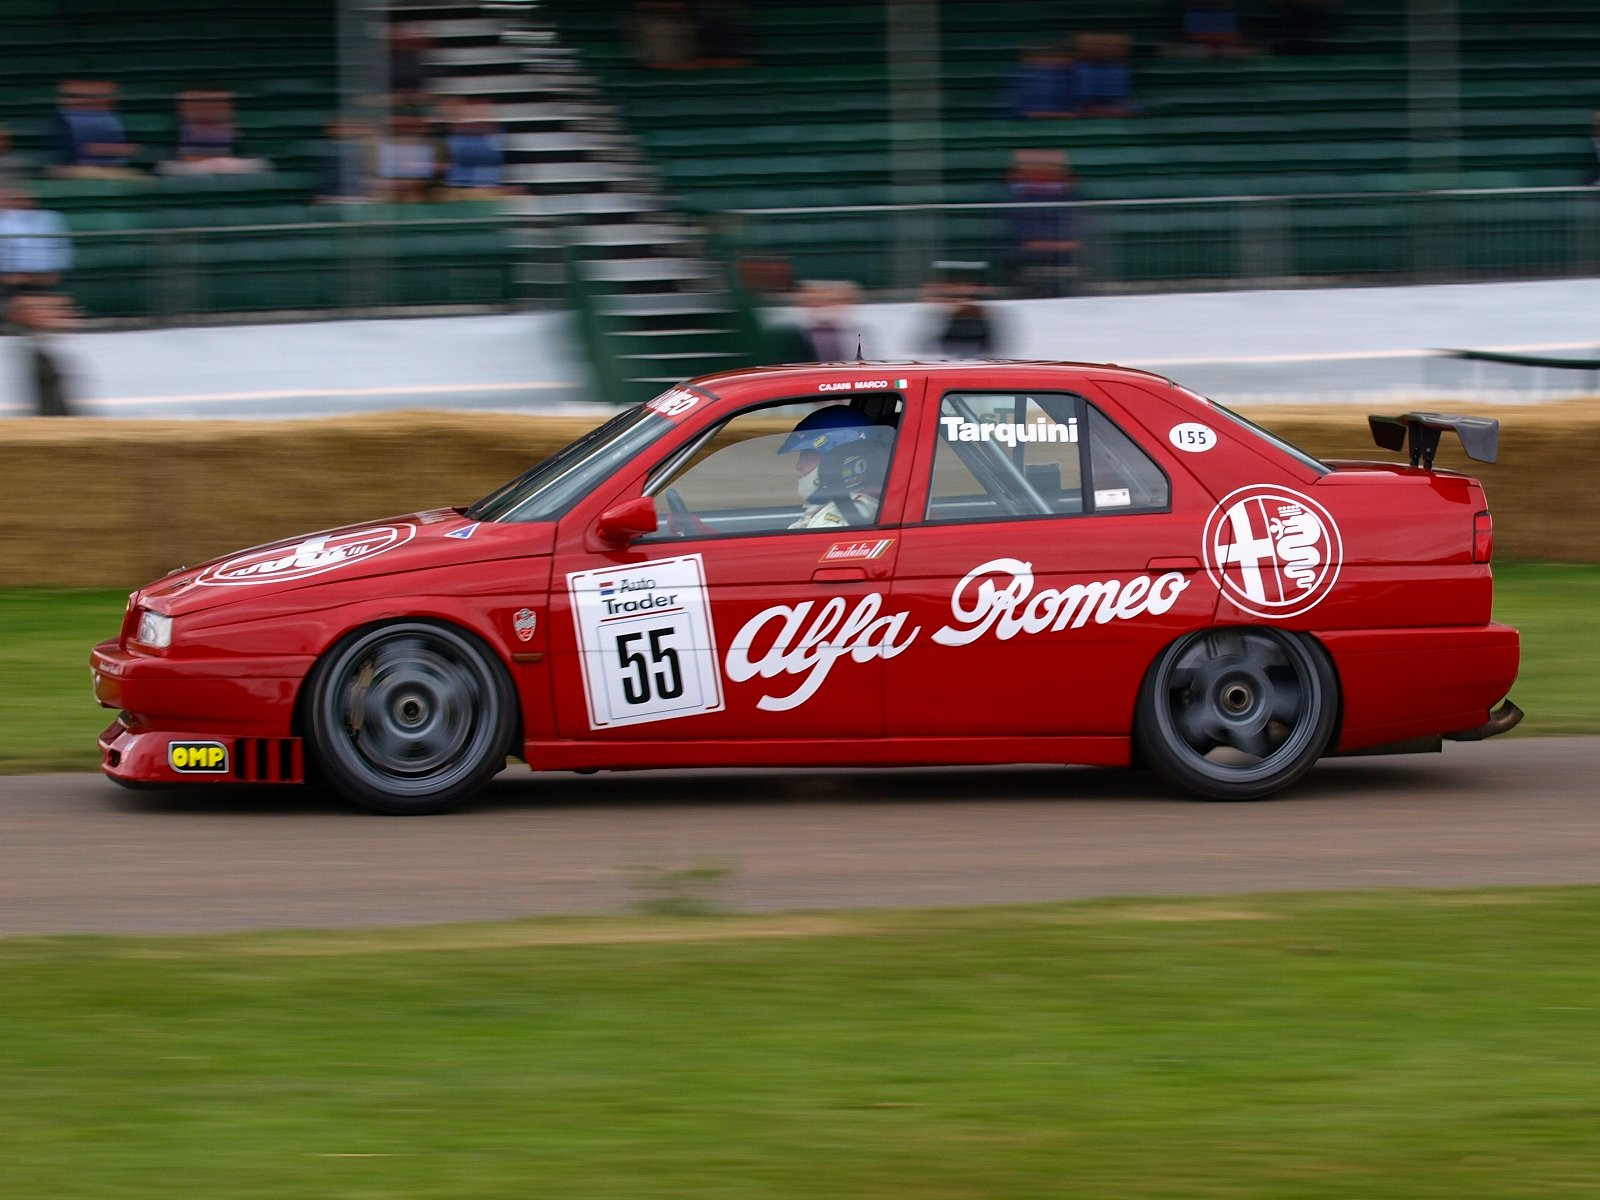 Giulietta Wheels together with Alfa Romeo Gtv besides 6314781352 besides 2 0 GTV Production N 203 likewise ToyotaSupra. on what a alfa gtv6